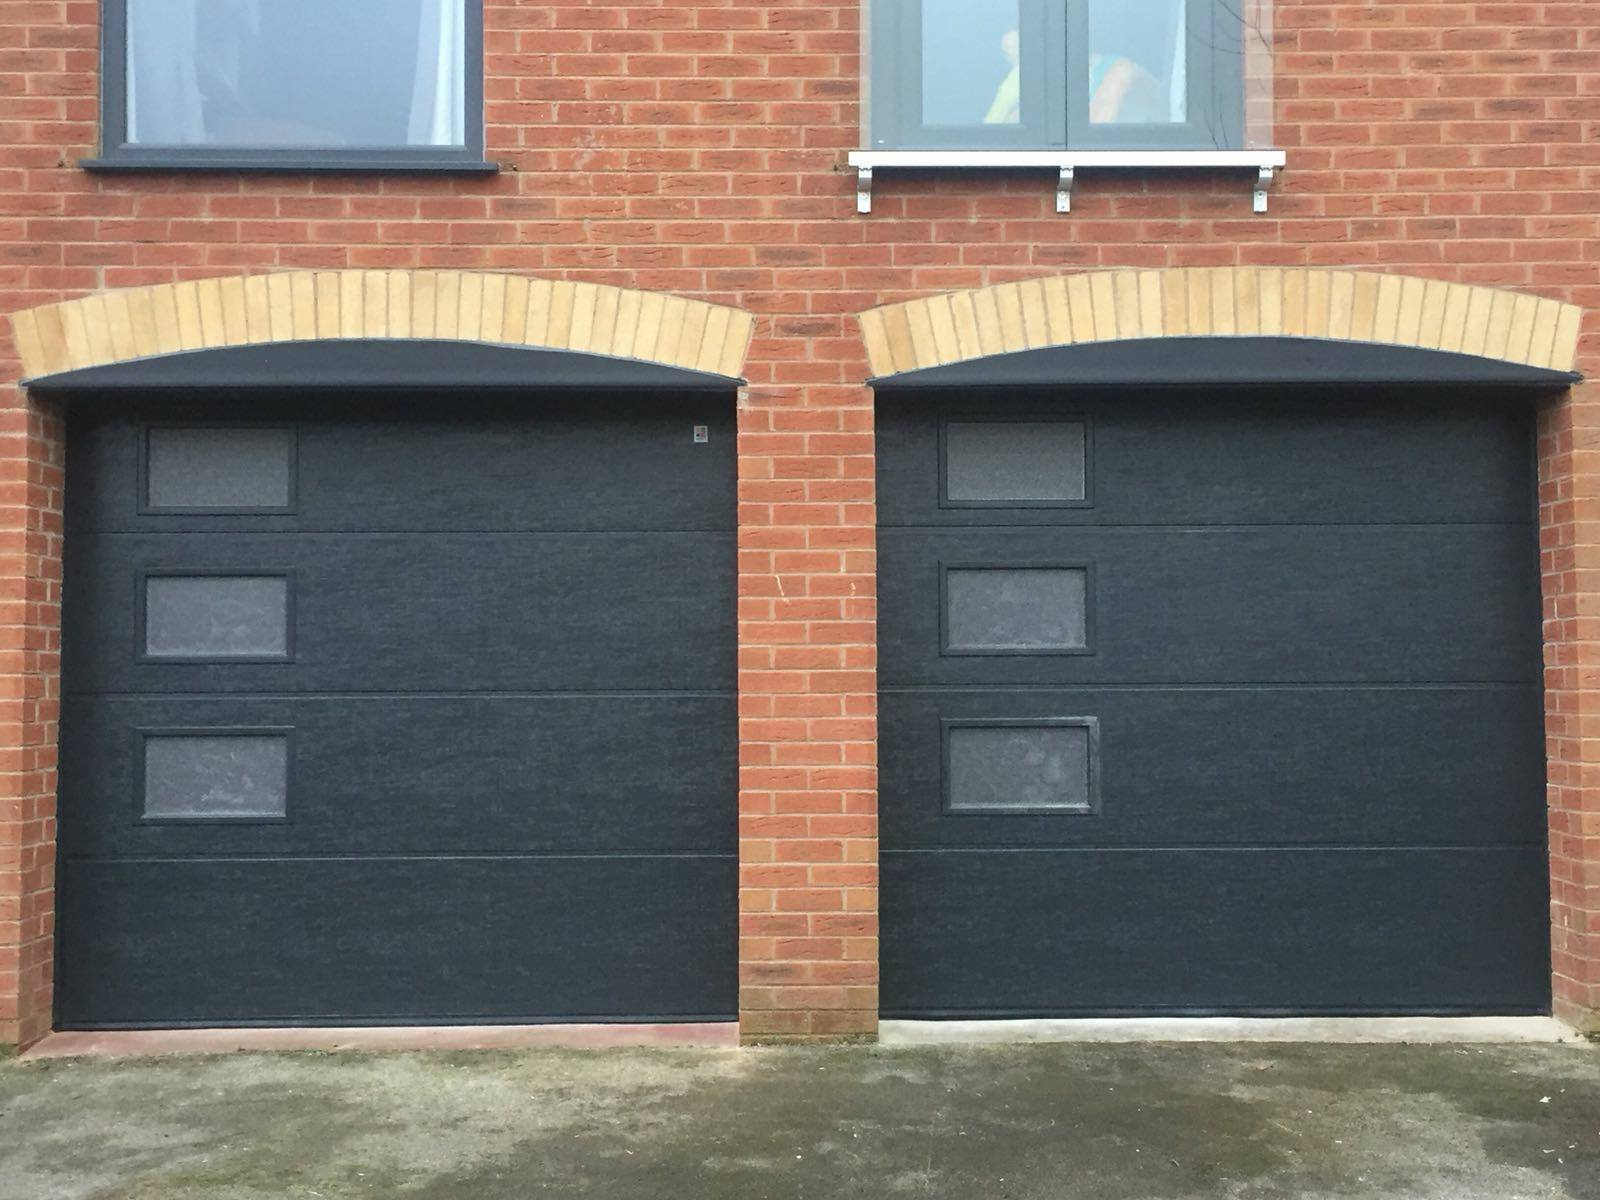 2 x black sectional garage doors in an L ribbed pattern with windows